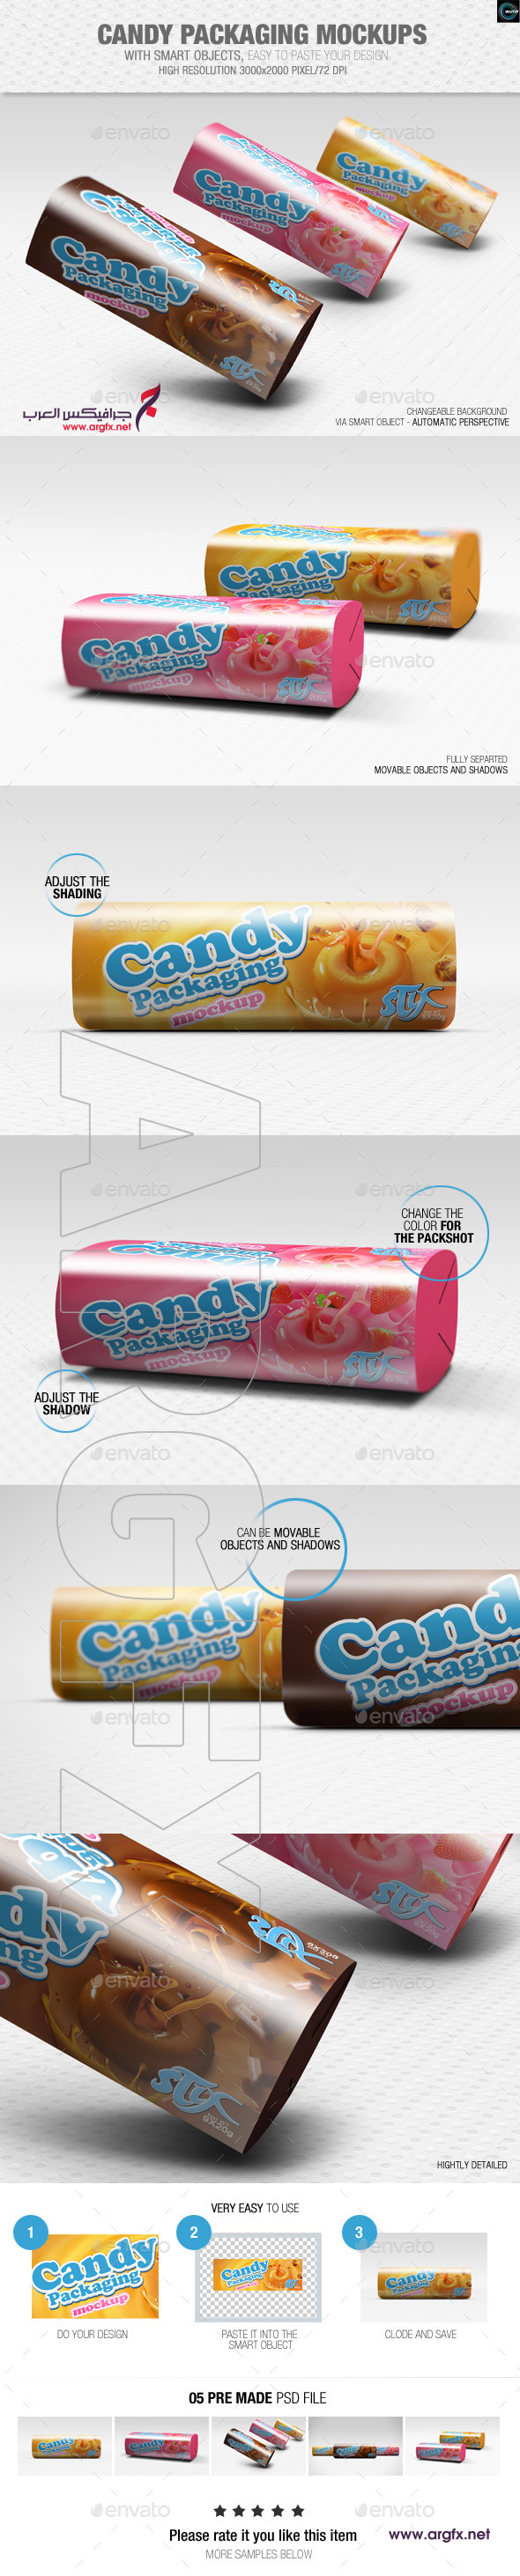 Candy Packaging Mockups 8864374